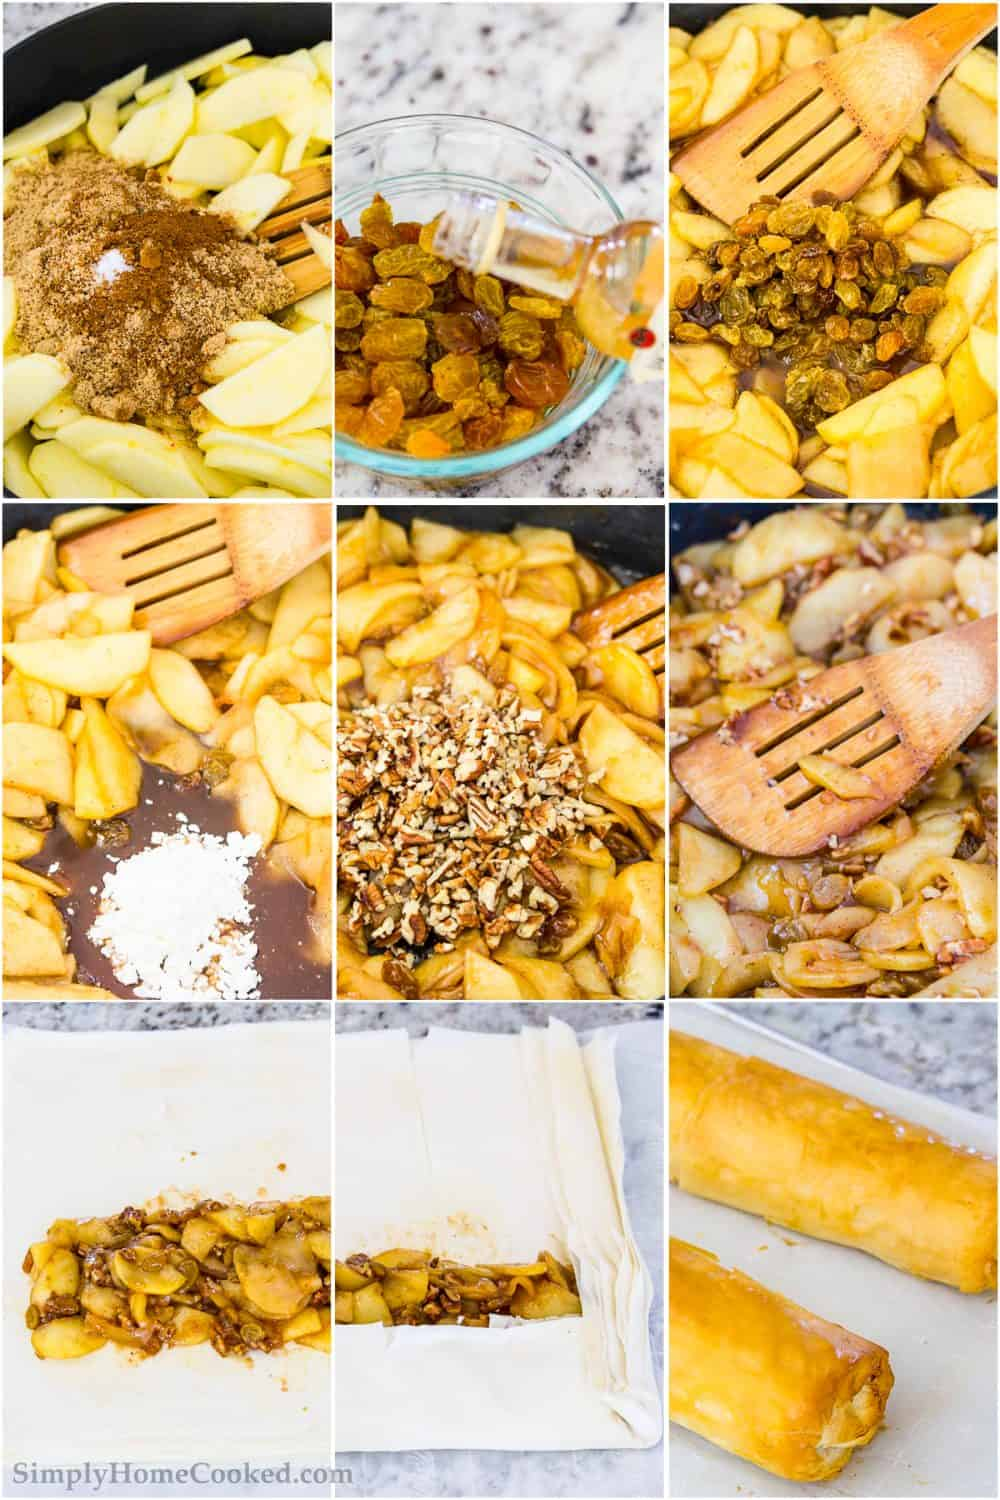 Step by step photo collage of steps to cook apples and roll apple strudel prior to cooking